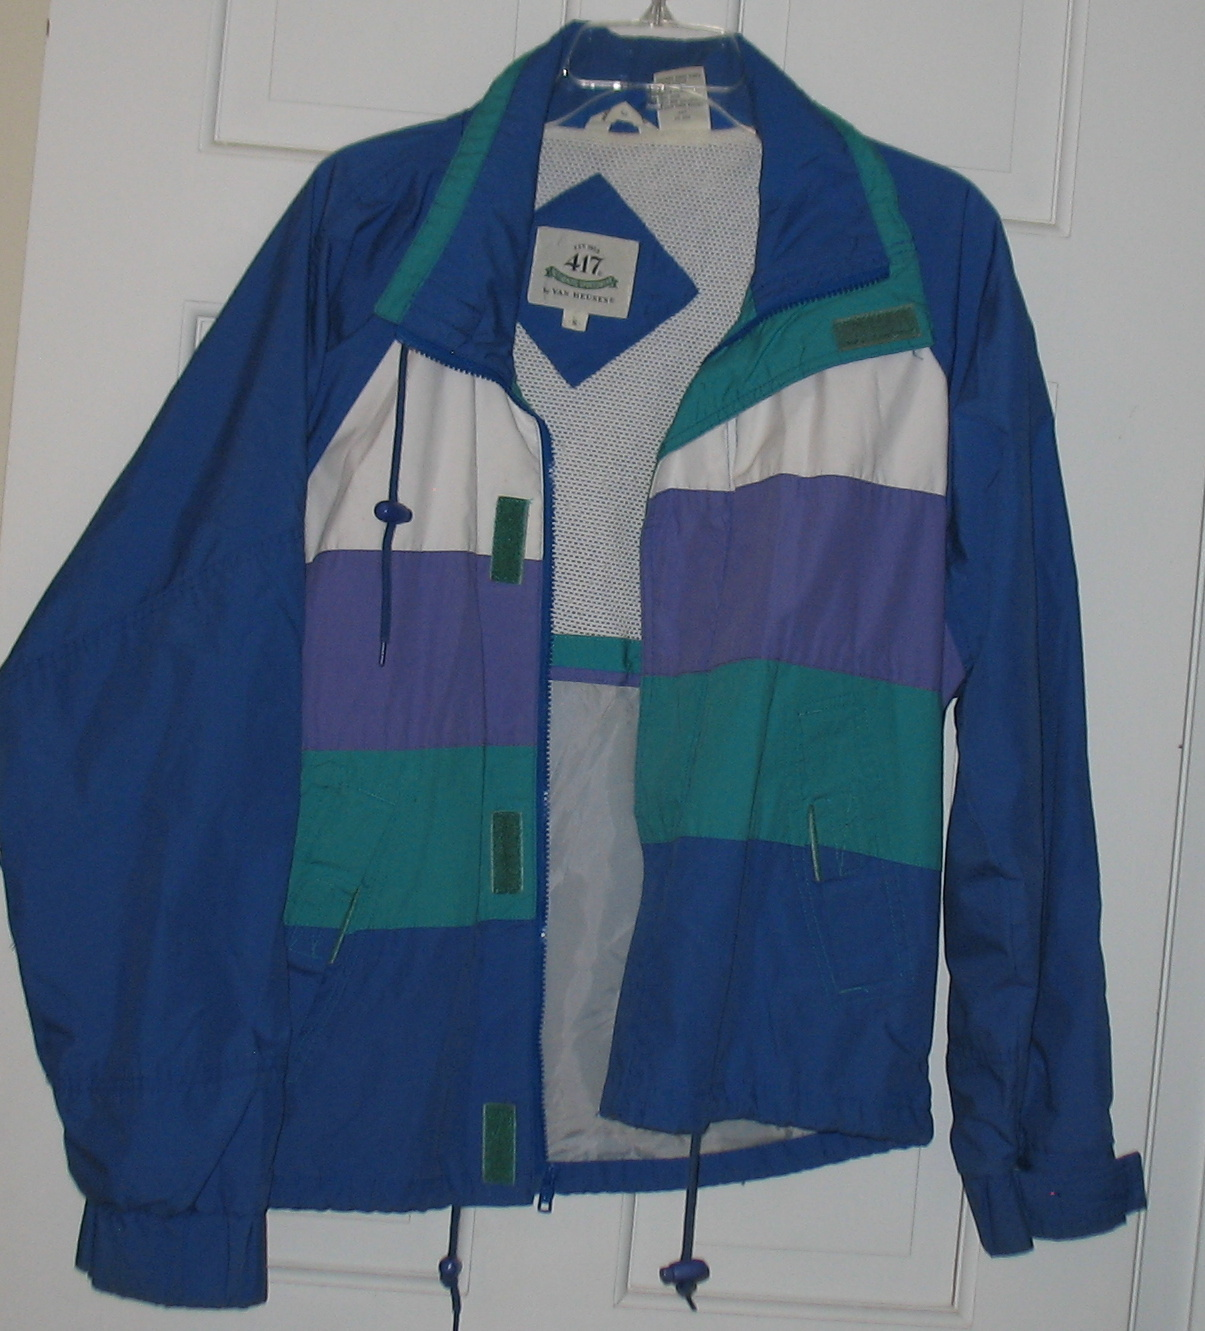 Man's Van Heusen 417 Blue Windbreaker Jacket SZ SMALL EUC